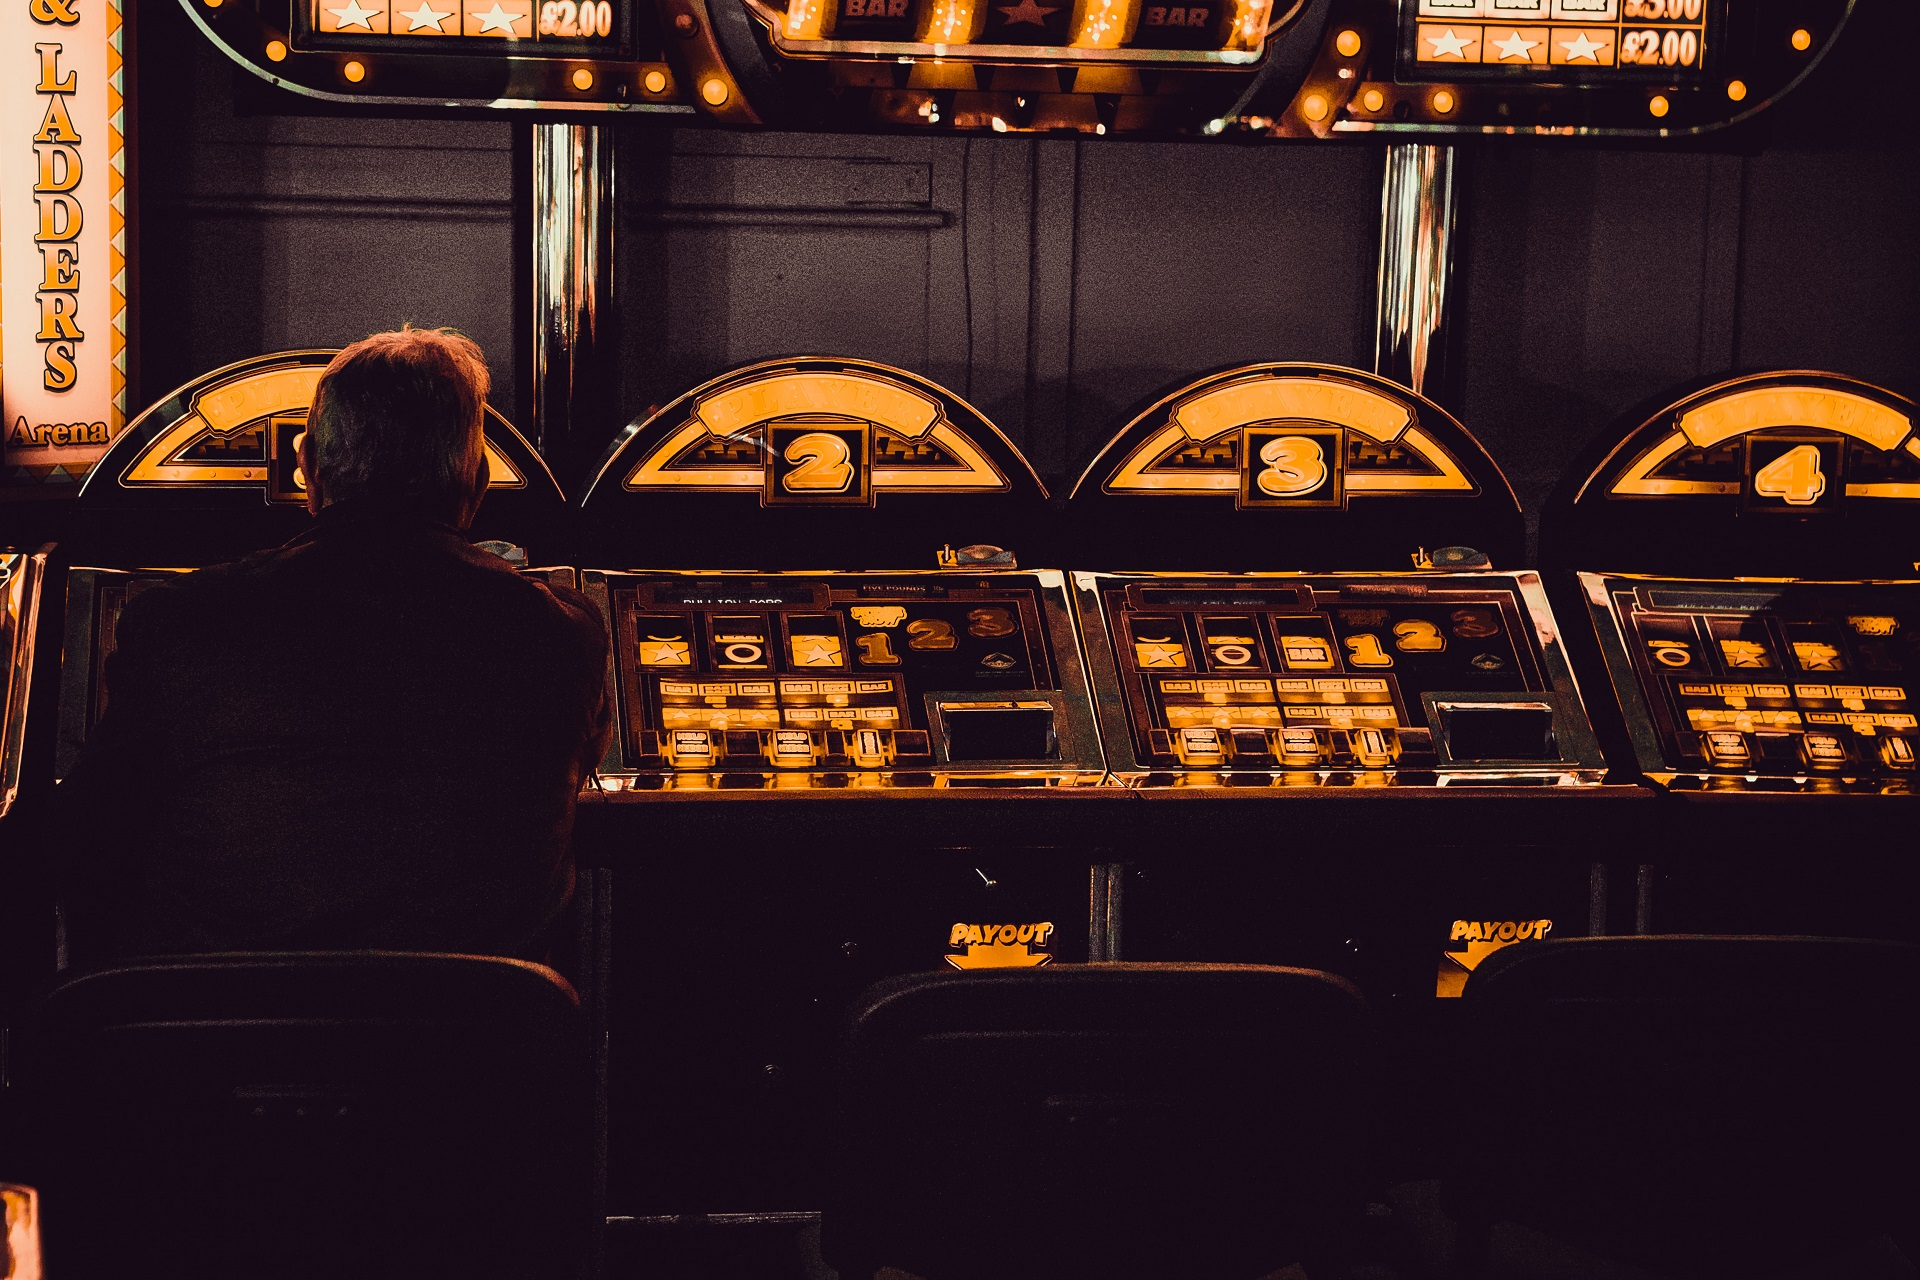 What Are Some Of The Payment Methods That Casinos Offer?